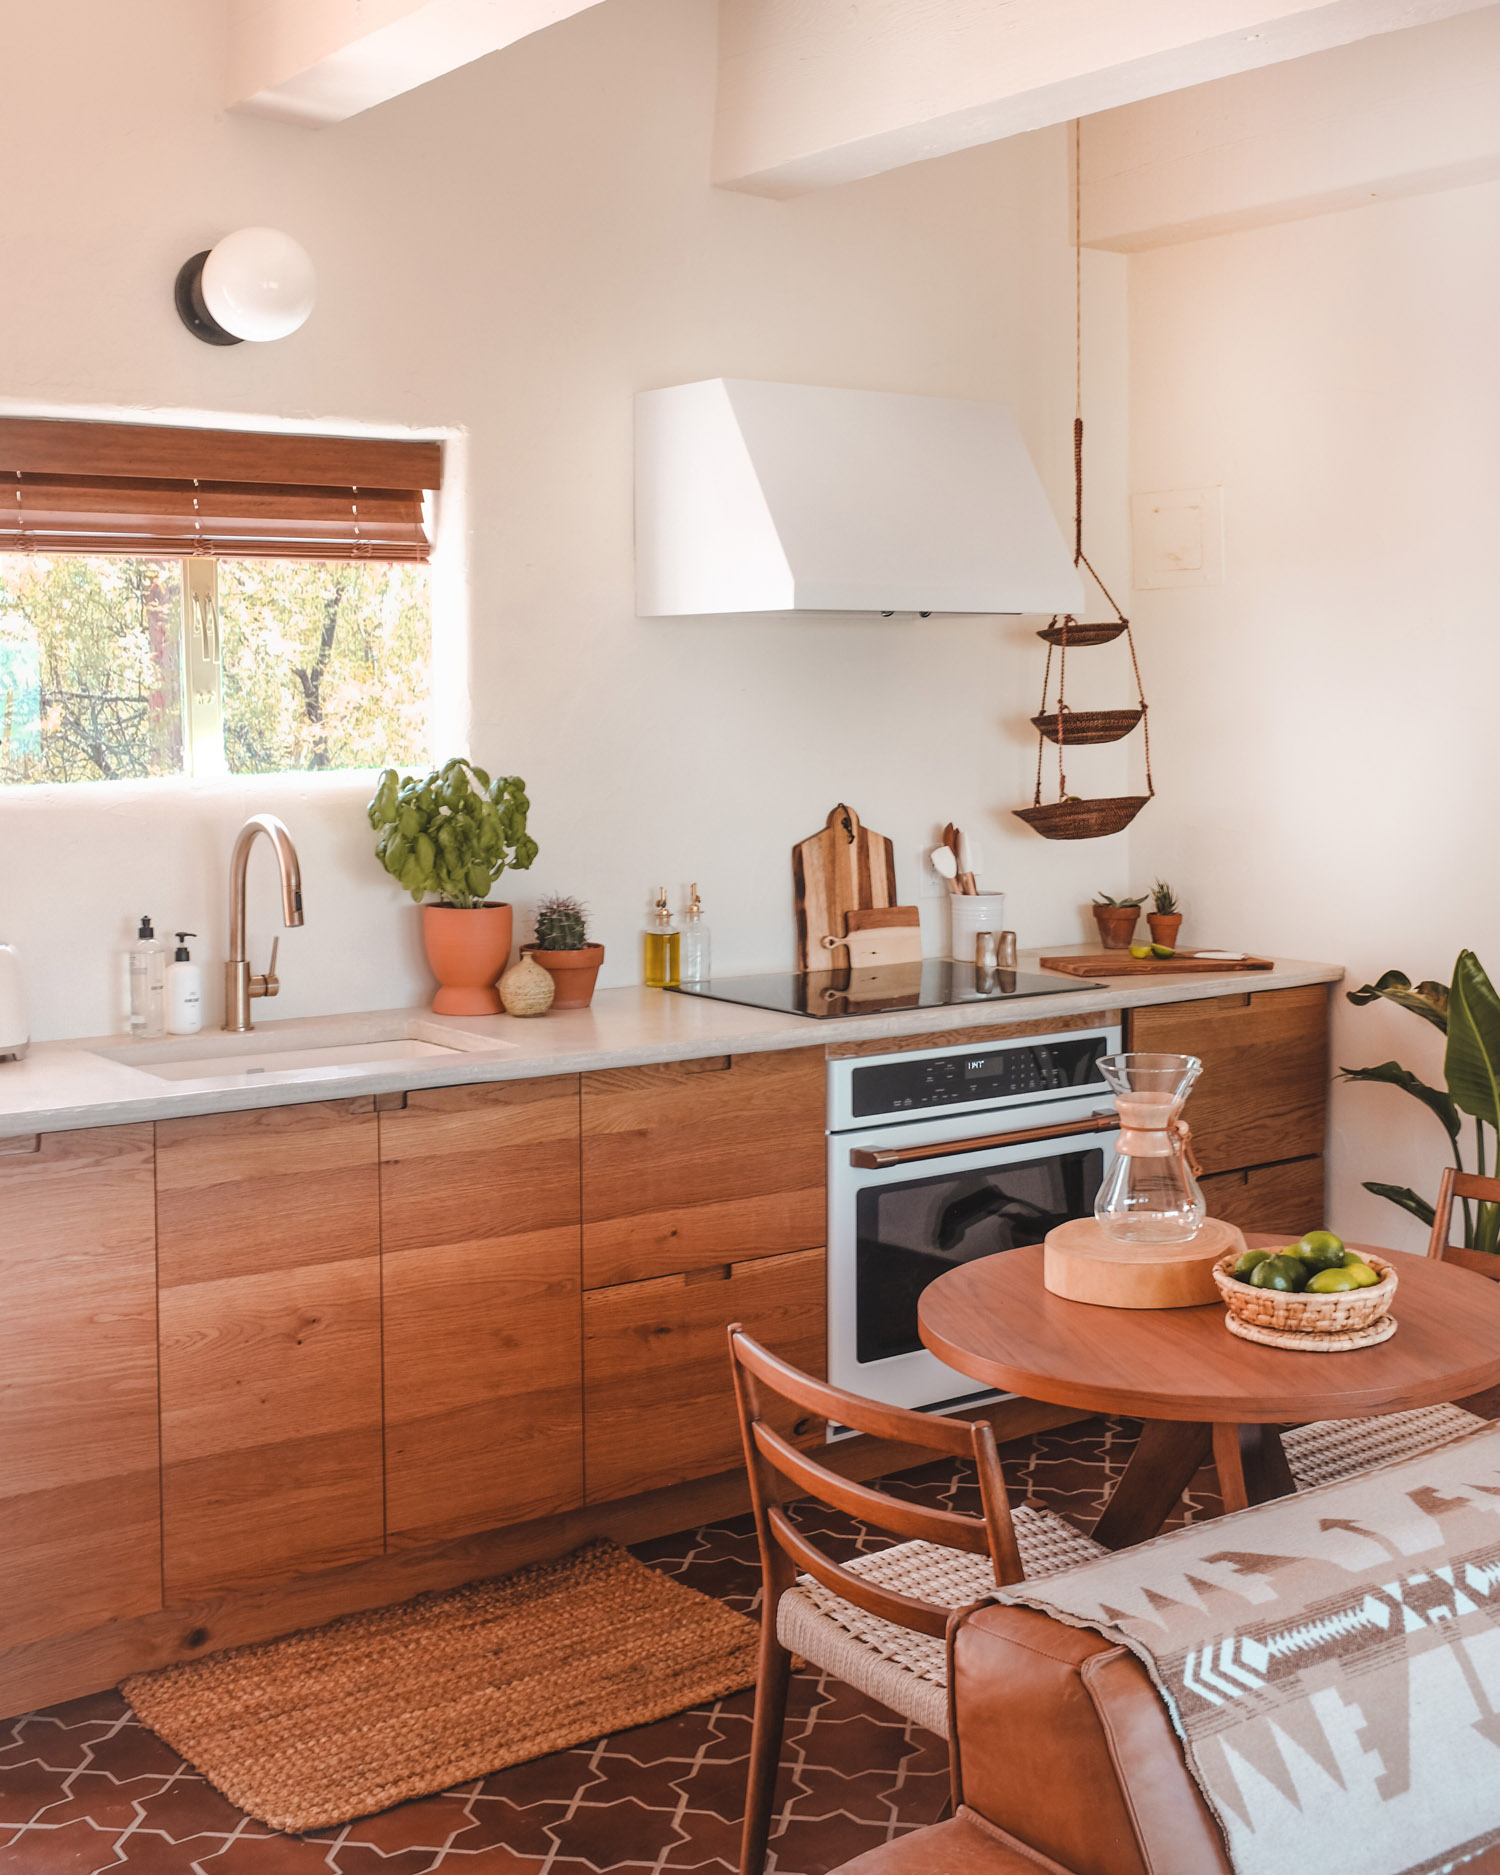 The Nordroom - Earthy Tones in an Arizona Vacation Rental by The Joshua Tree House Team